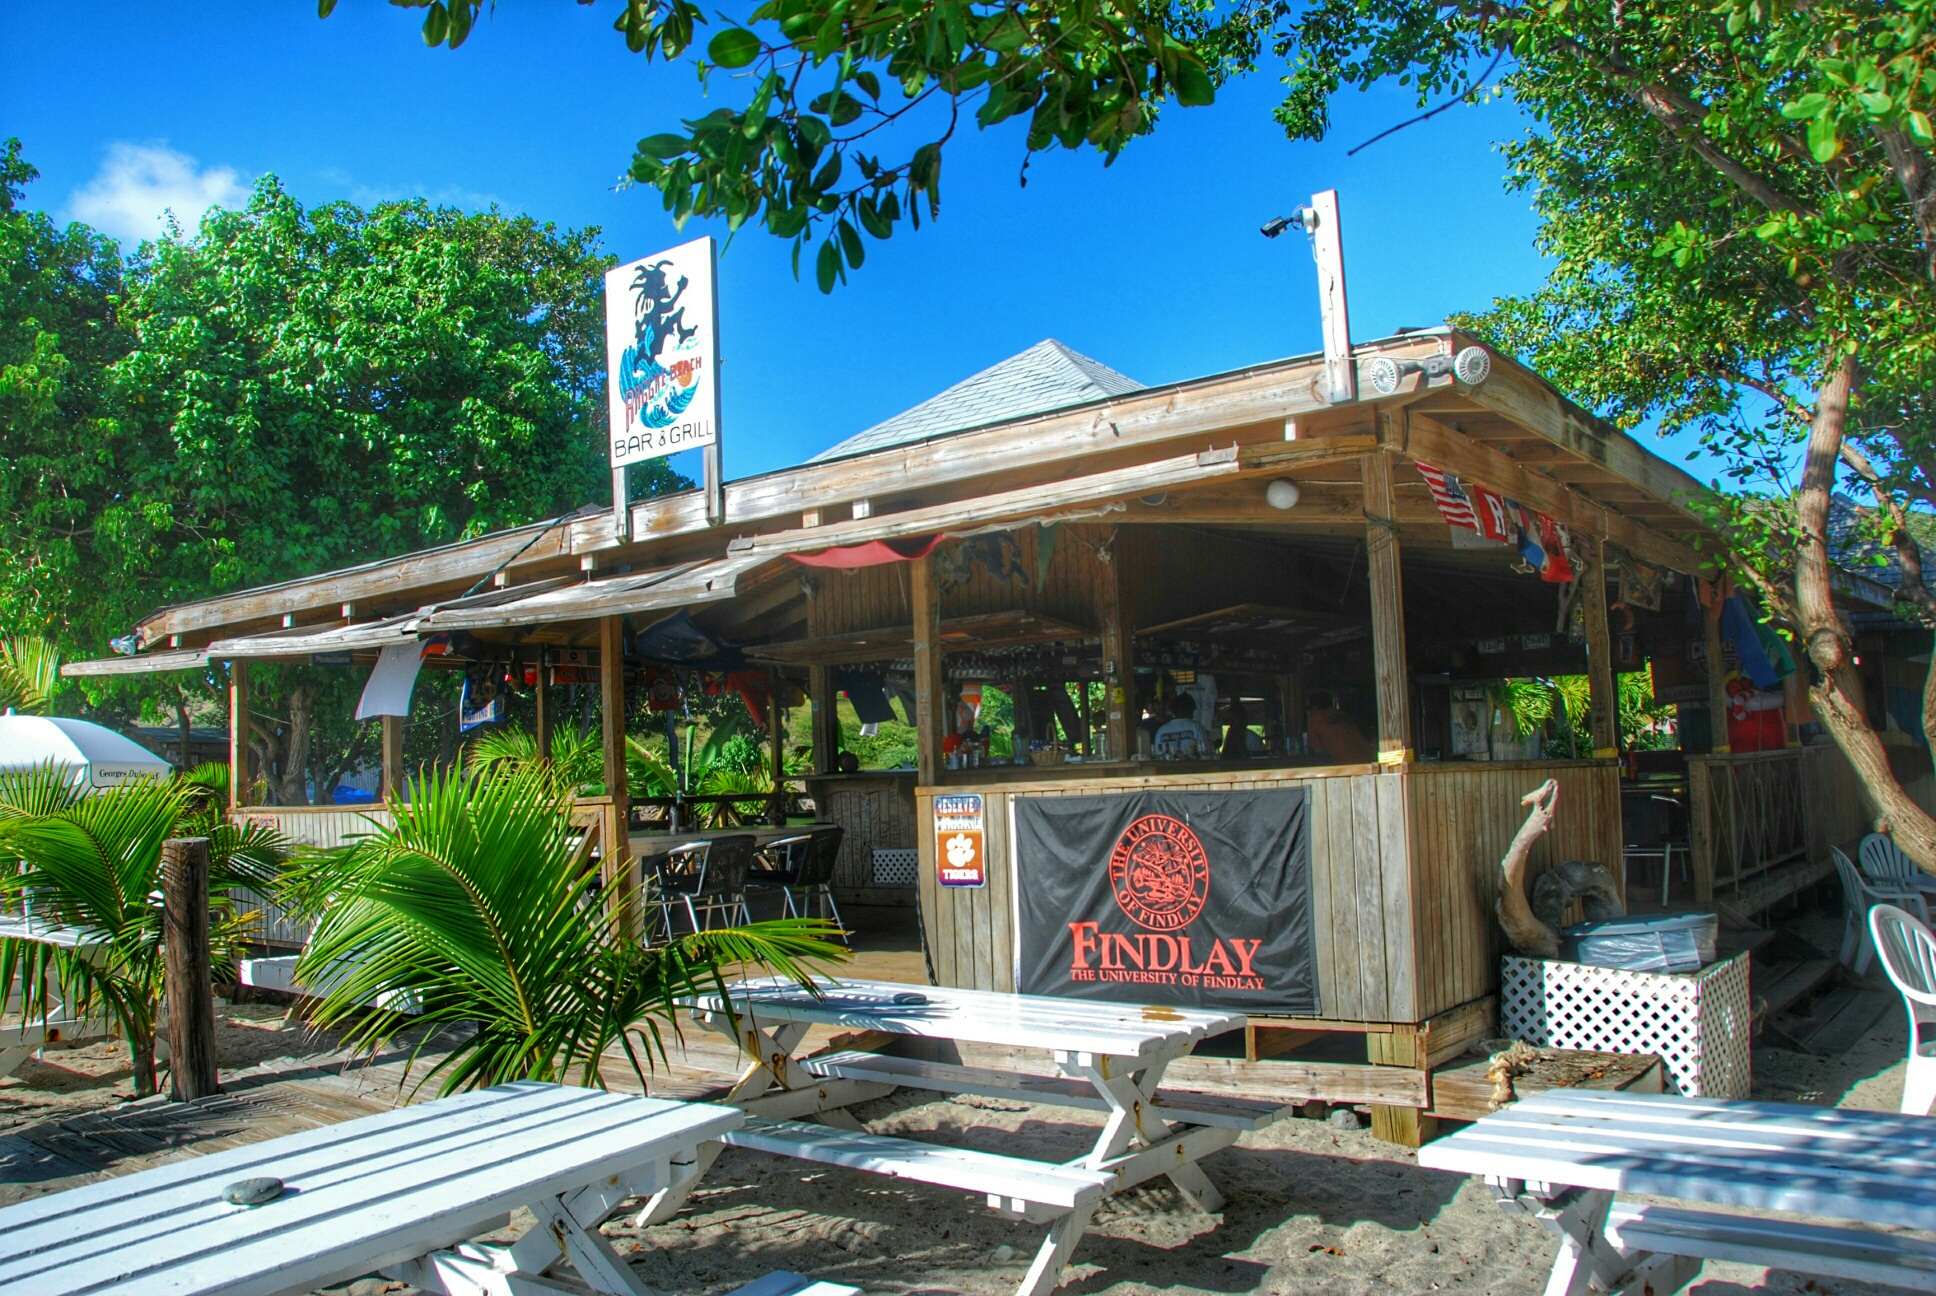 Reggae Beach Bar And Grill Listed Among Top Ten Winners In The Best Caribbean Category